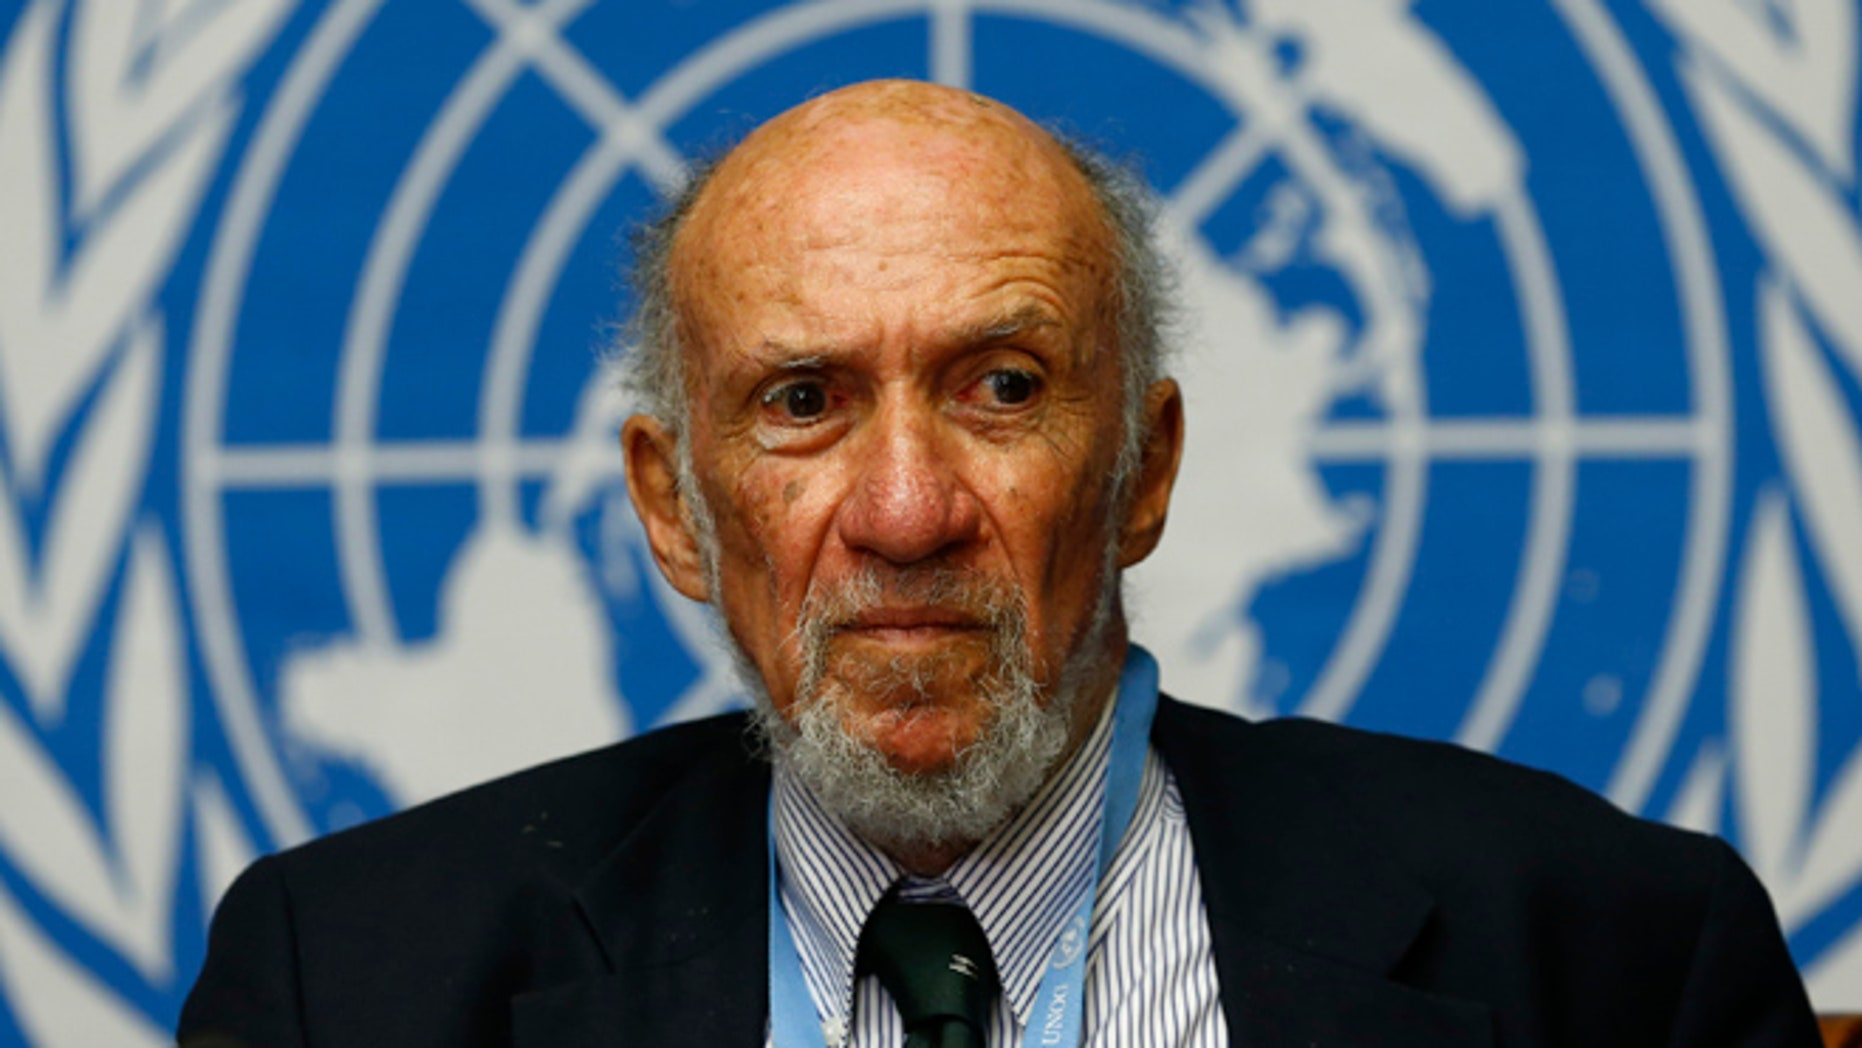 March 21, 2014: Richard Falk, the United Nations special rapporteur on occupied Palestine, addresses a news conference at the U.N. European headquarters in Geneva.